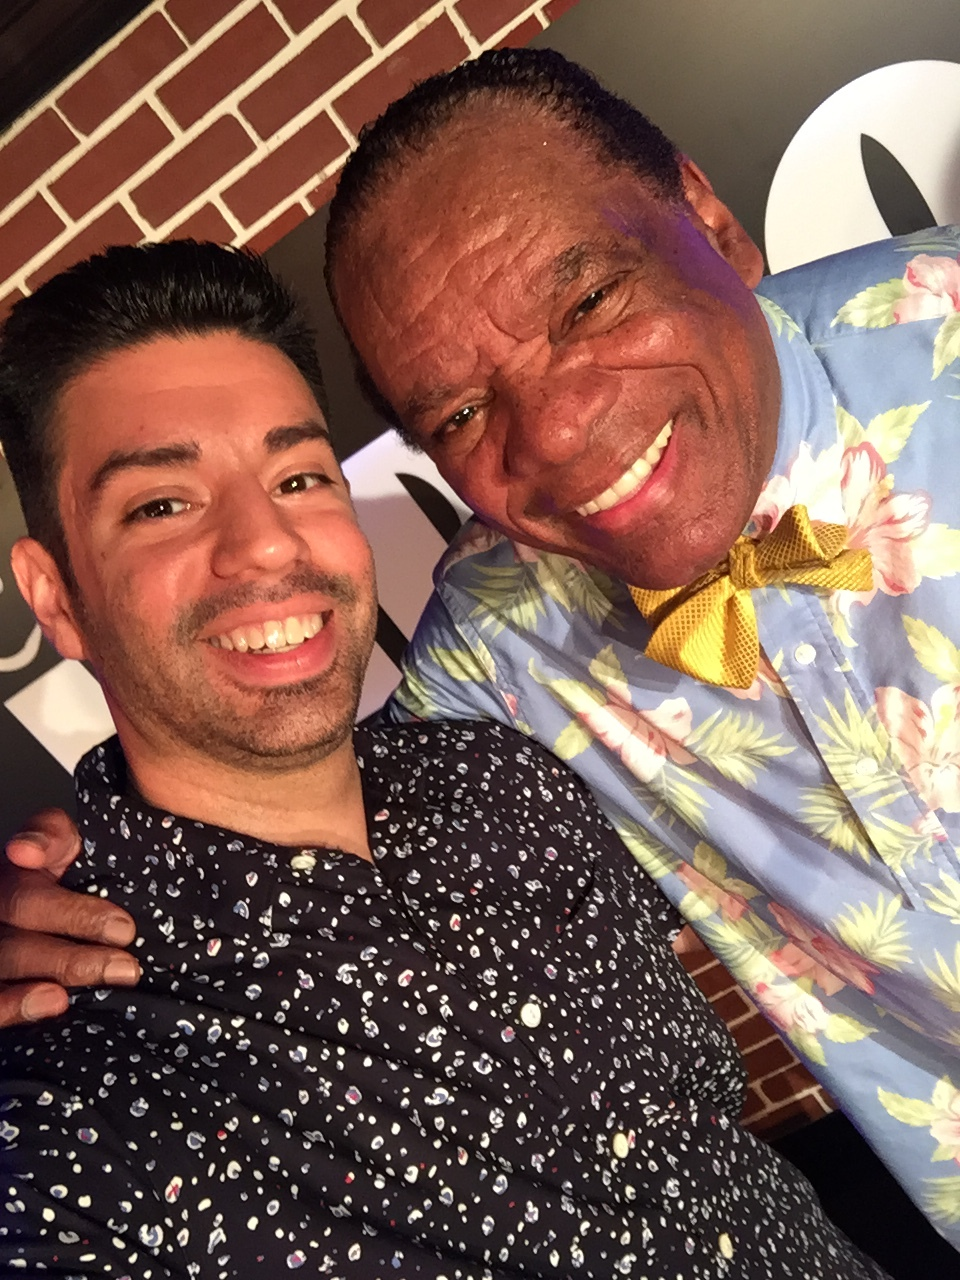 Great weekend opening for the Legend John Witherspoon - 6 shows at the DC improv July 13-16th